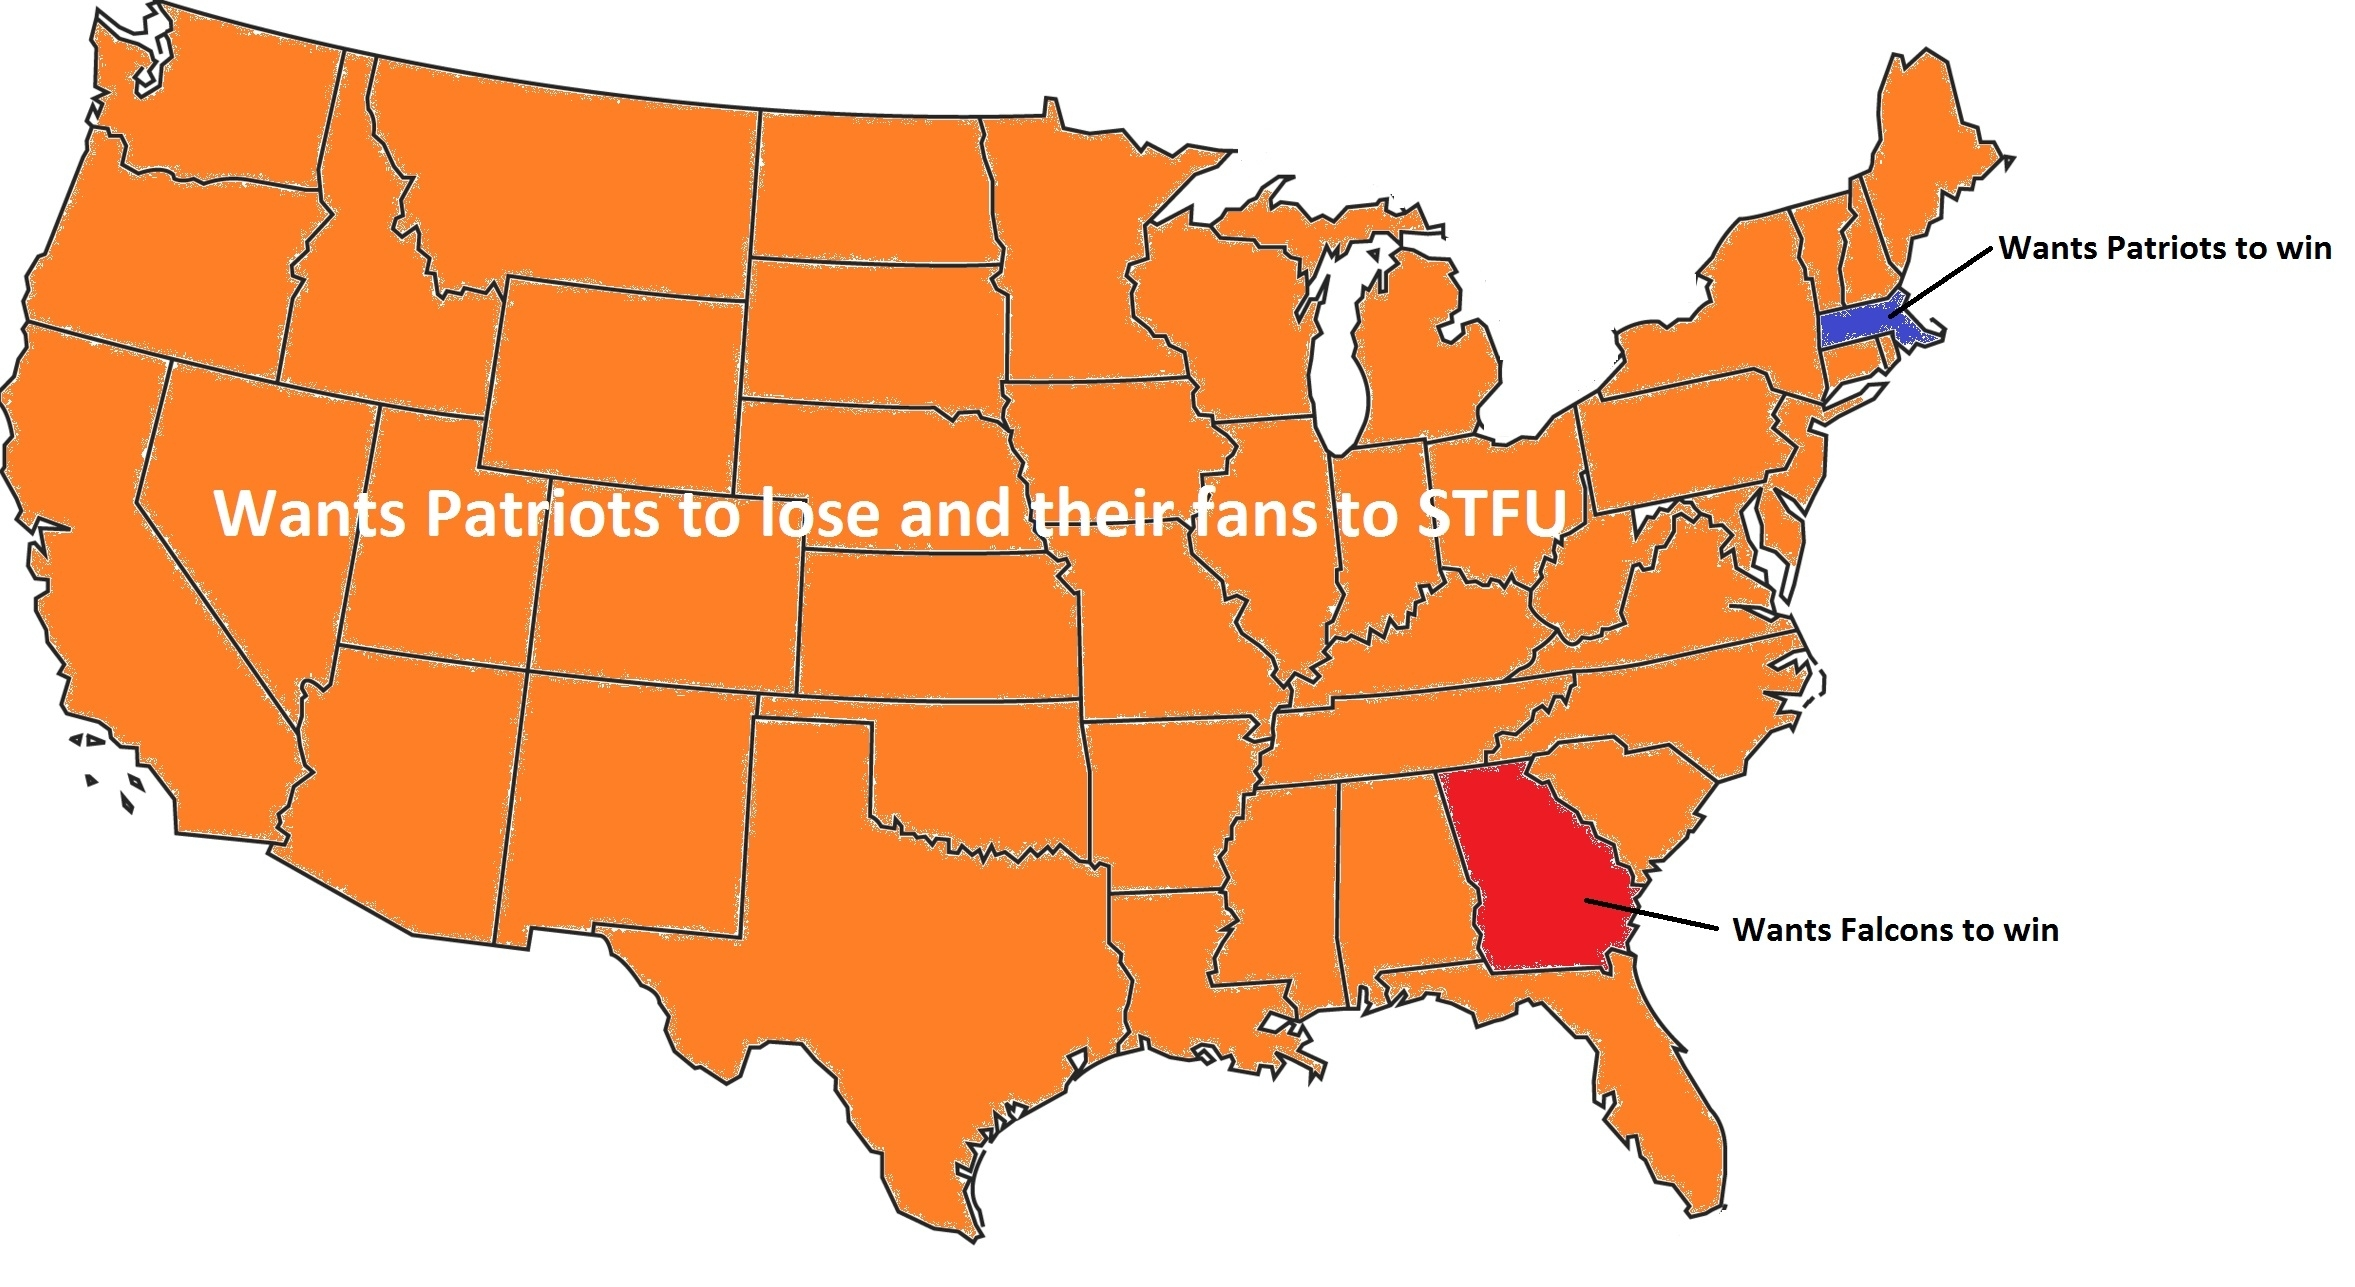 Superbowl Map - Imgur pertaining to Map Of Who Is Rooting For Super Bowl